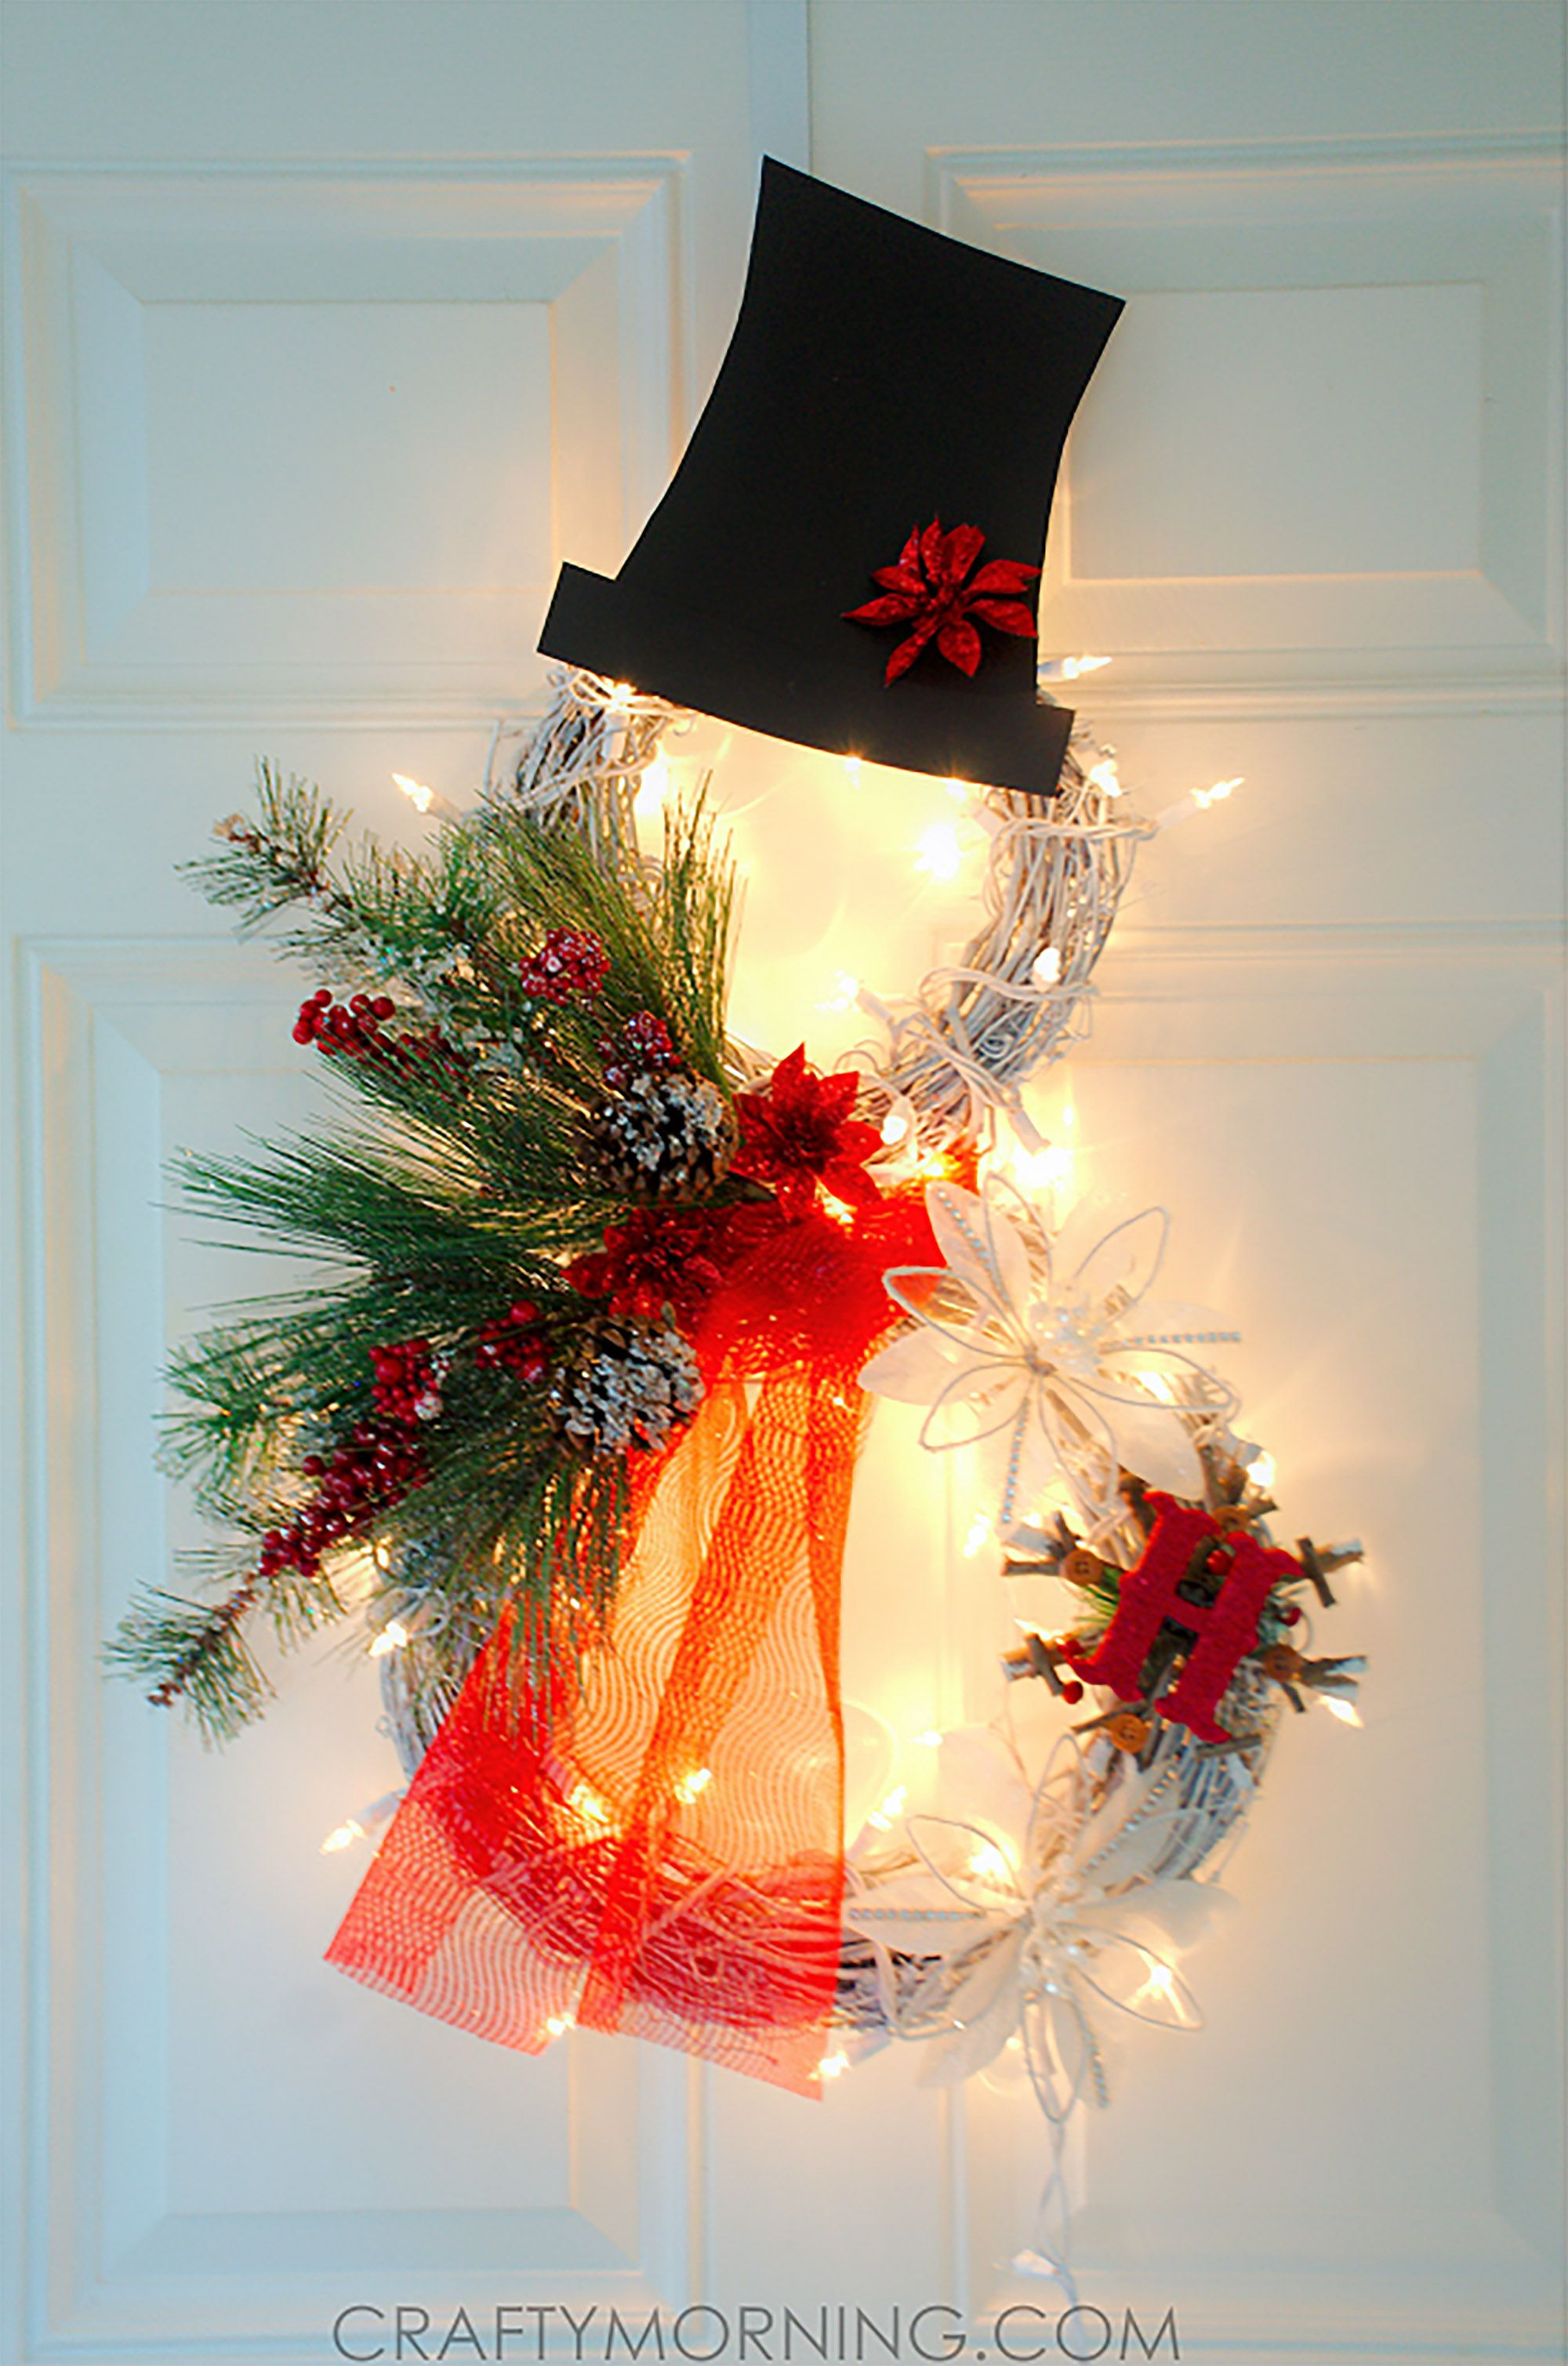 39 Easy Christmas Crafts for Adults to Make - DIY Ideas for Holiday ...